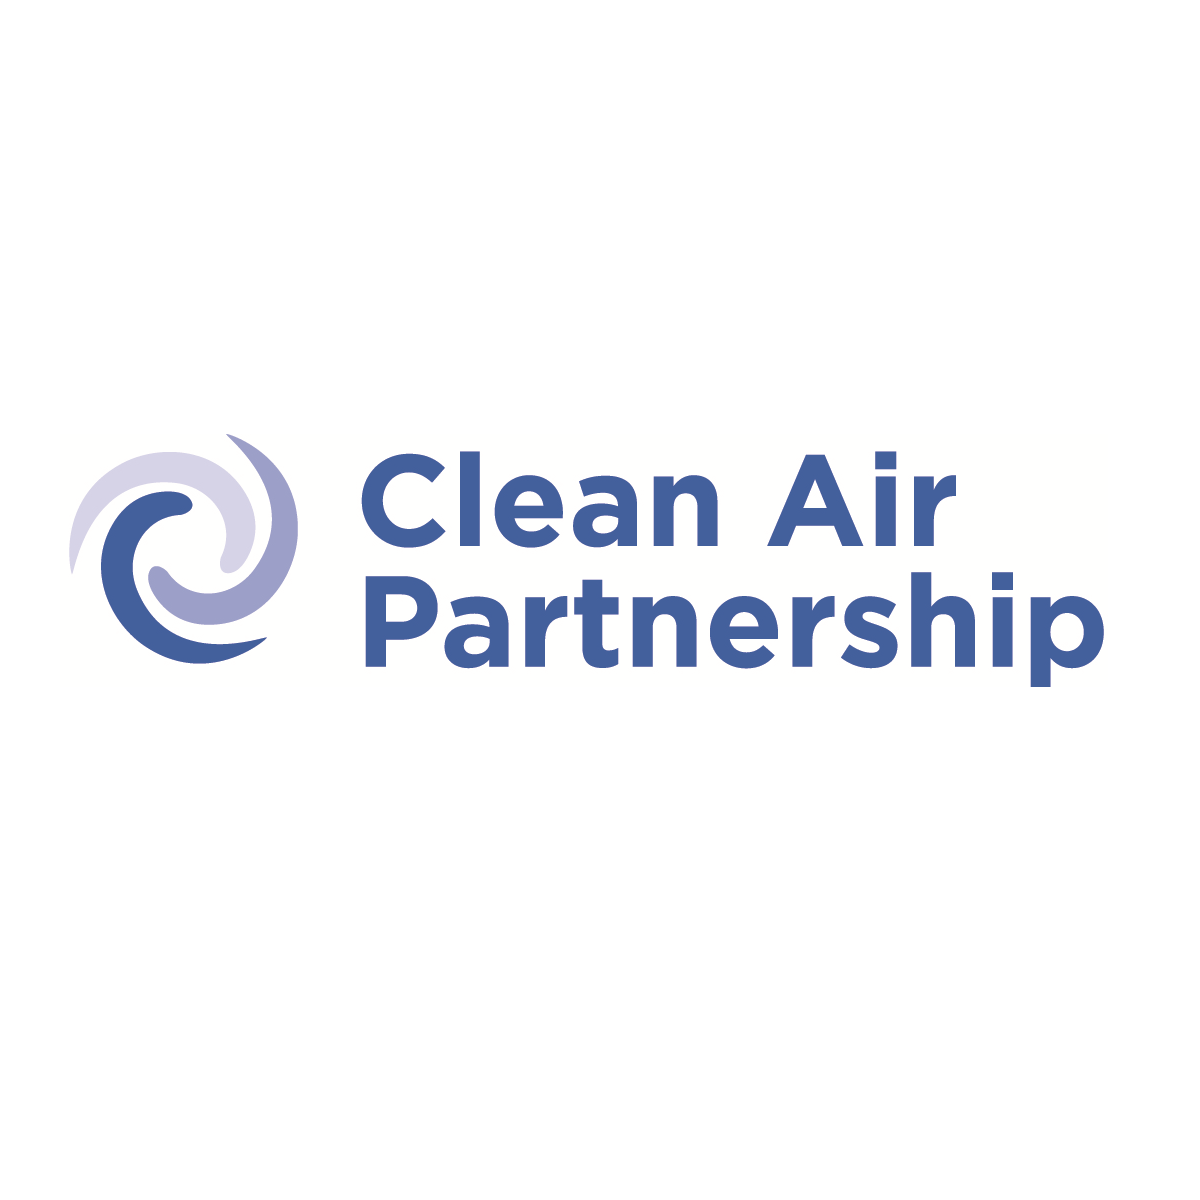 Clean Air Partnership logo